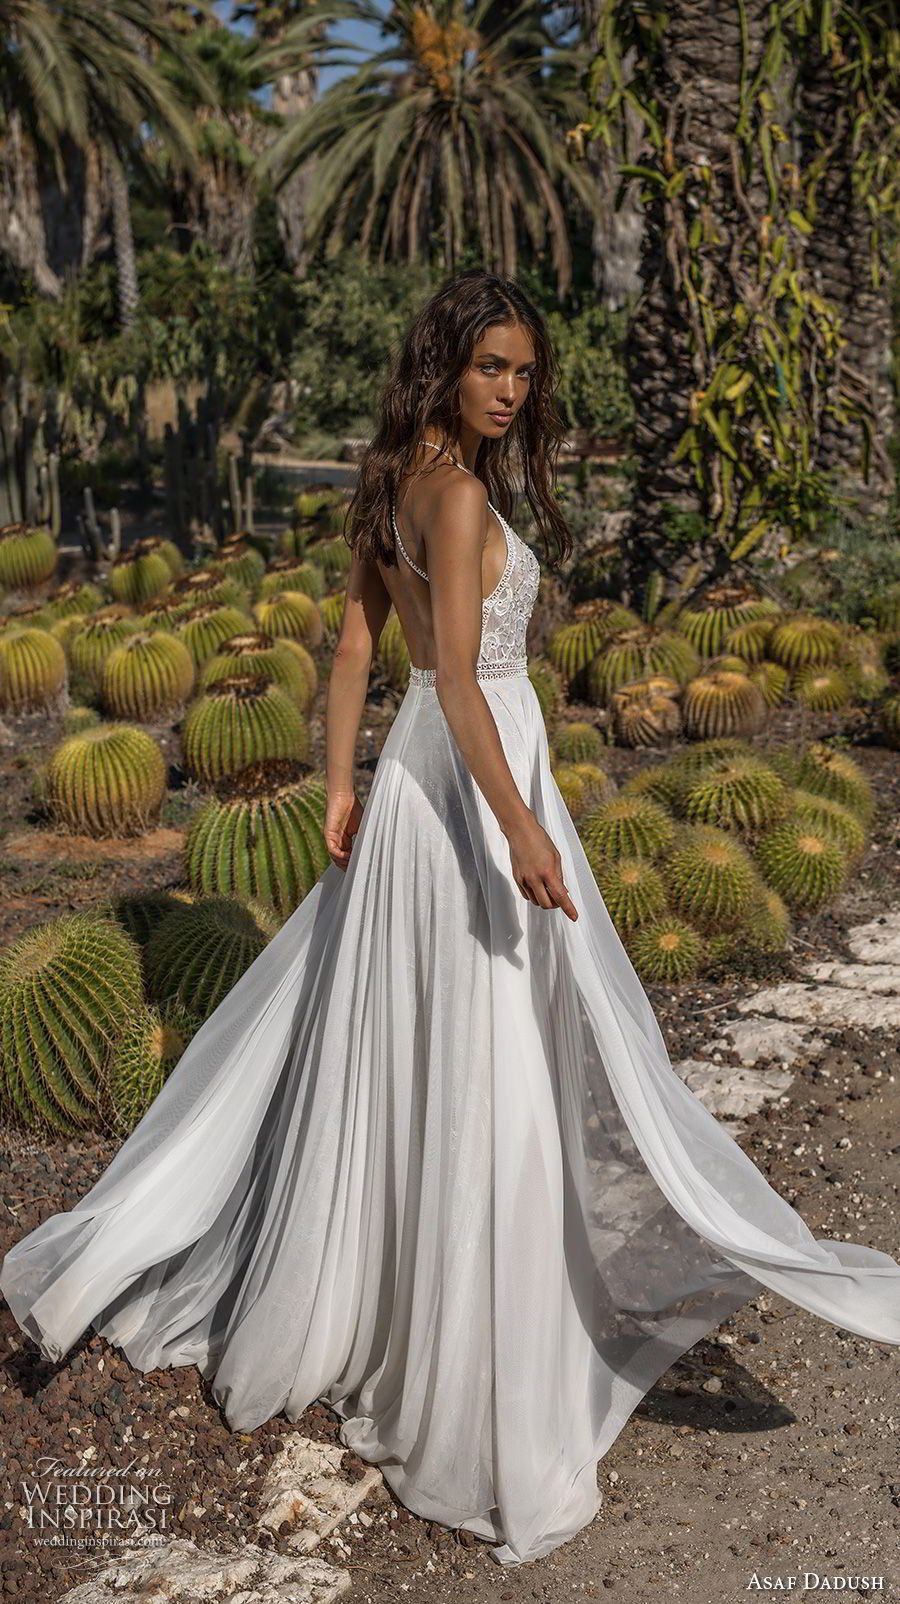 asaf dadush 2018 bridal sleevless halter jswel neck heavily embellished bodice double slit skirt romantic soft a line wedding dress open back sweep train (11) bv